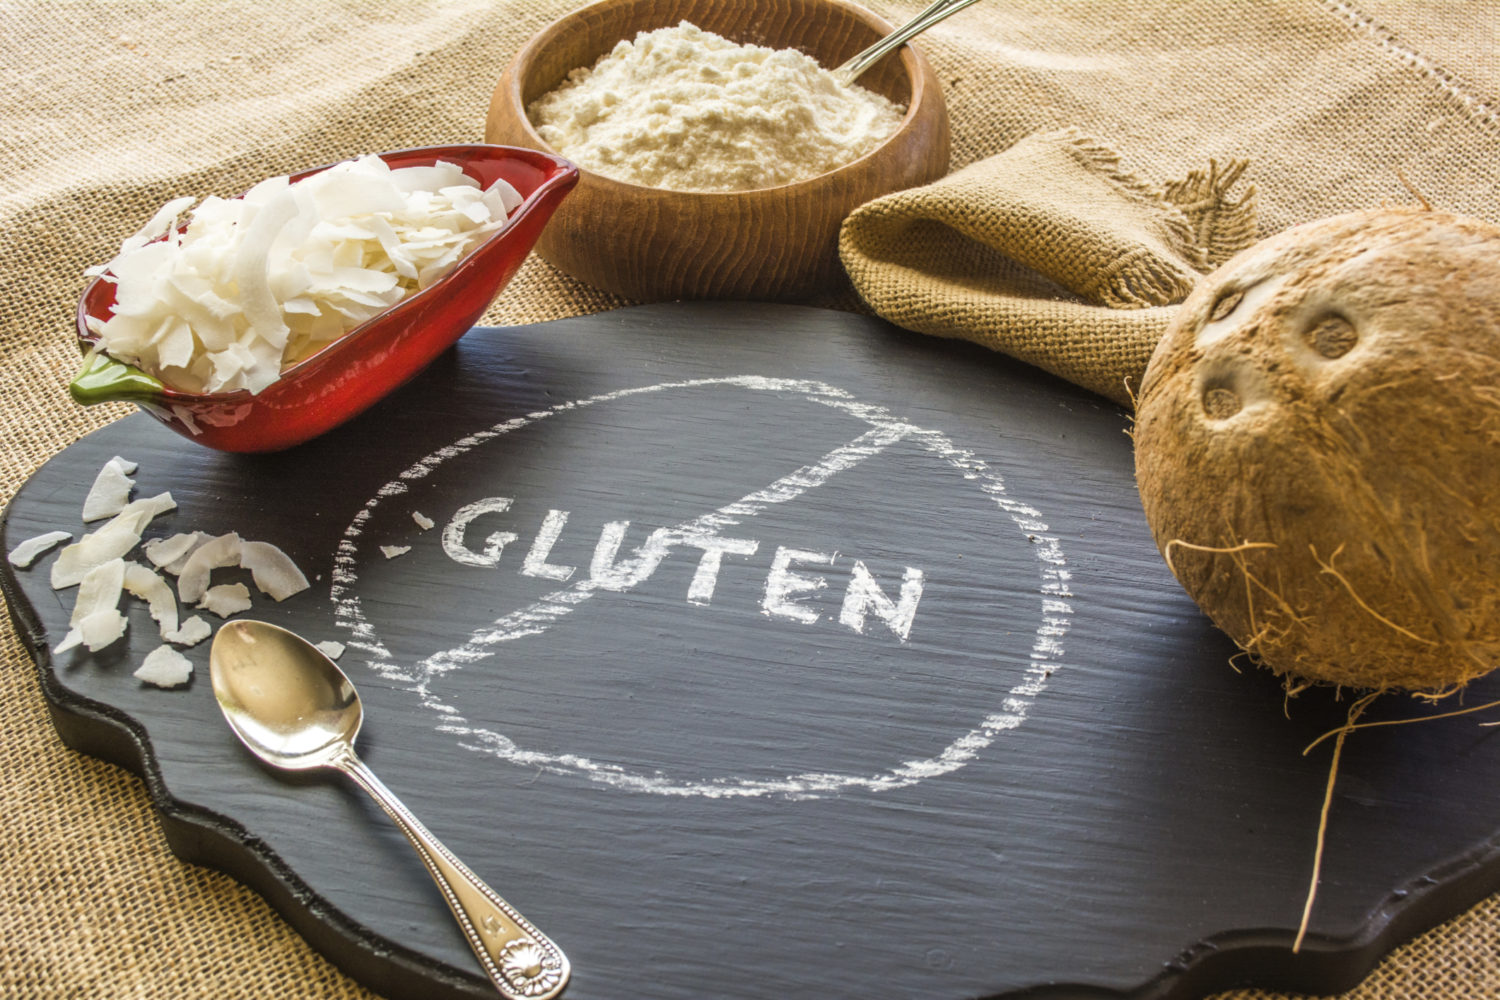 Gluten-free diet carries increased obesity risk, warn experts